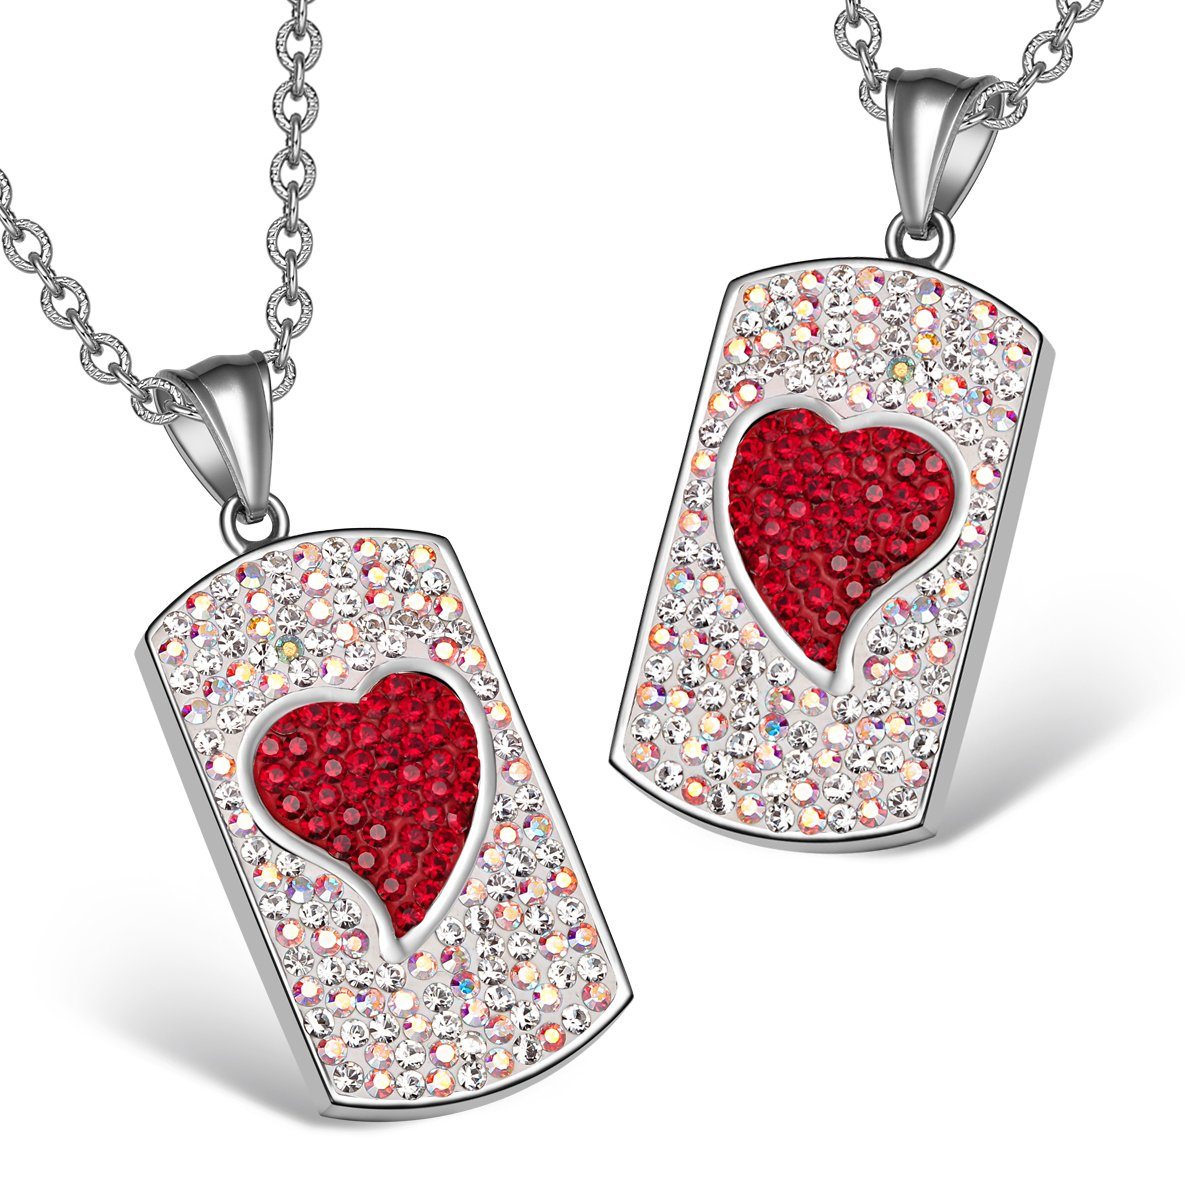 Magic Hearts Austrian Crystal Love Couples or Best Friends Tag Rainbow White Cherry Red Necklaces